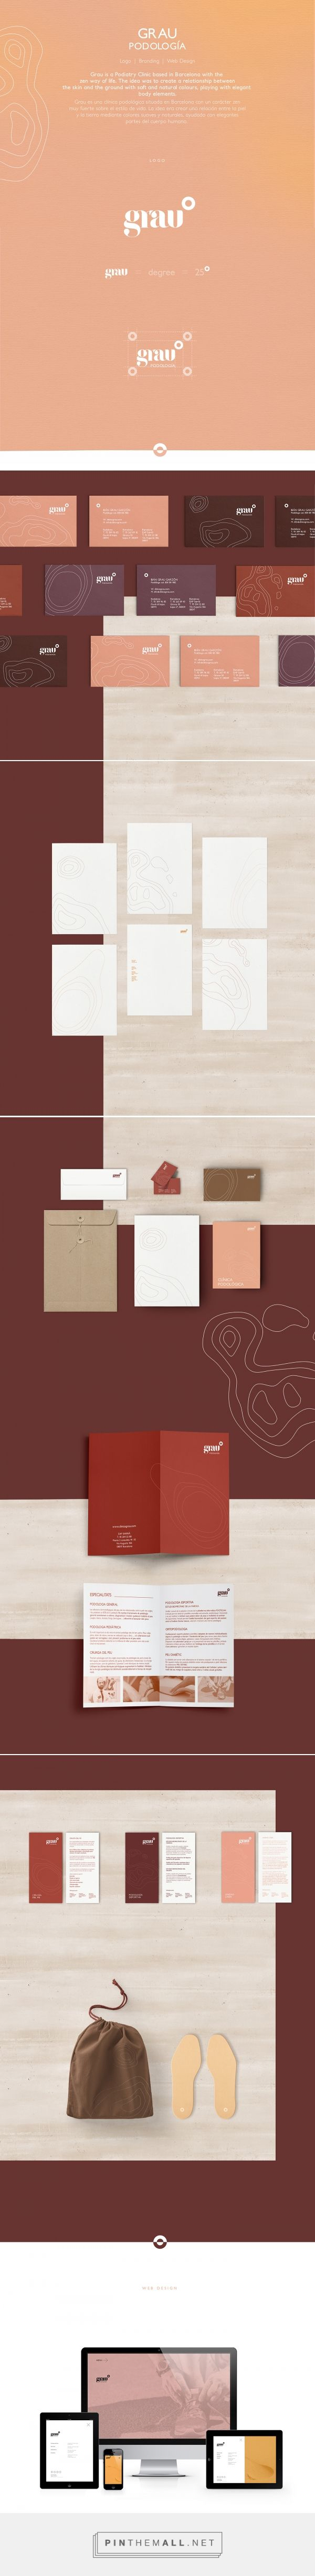 Grau Podiatry Clinic Branding by Rhombus Design   Fivestar Branding Agency – Design and Branding Agency & Curated Inspiration Gallery